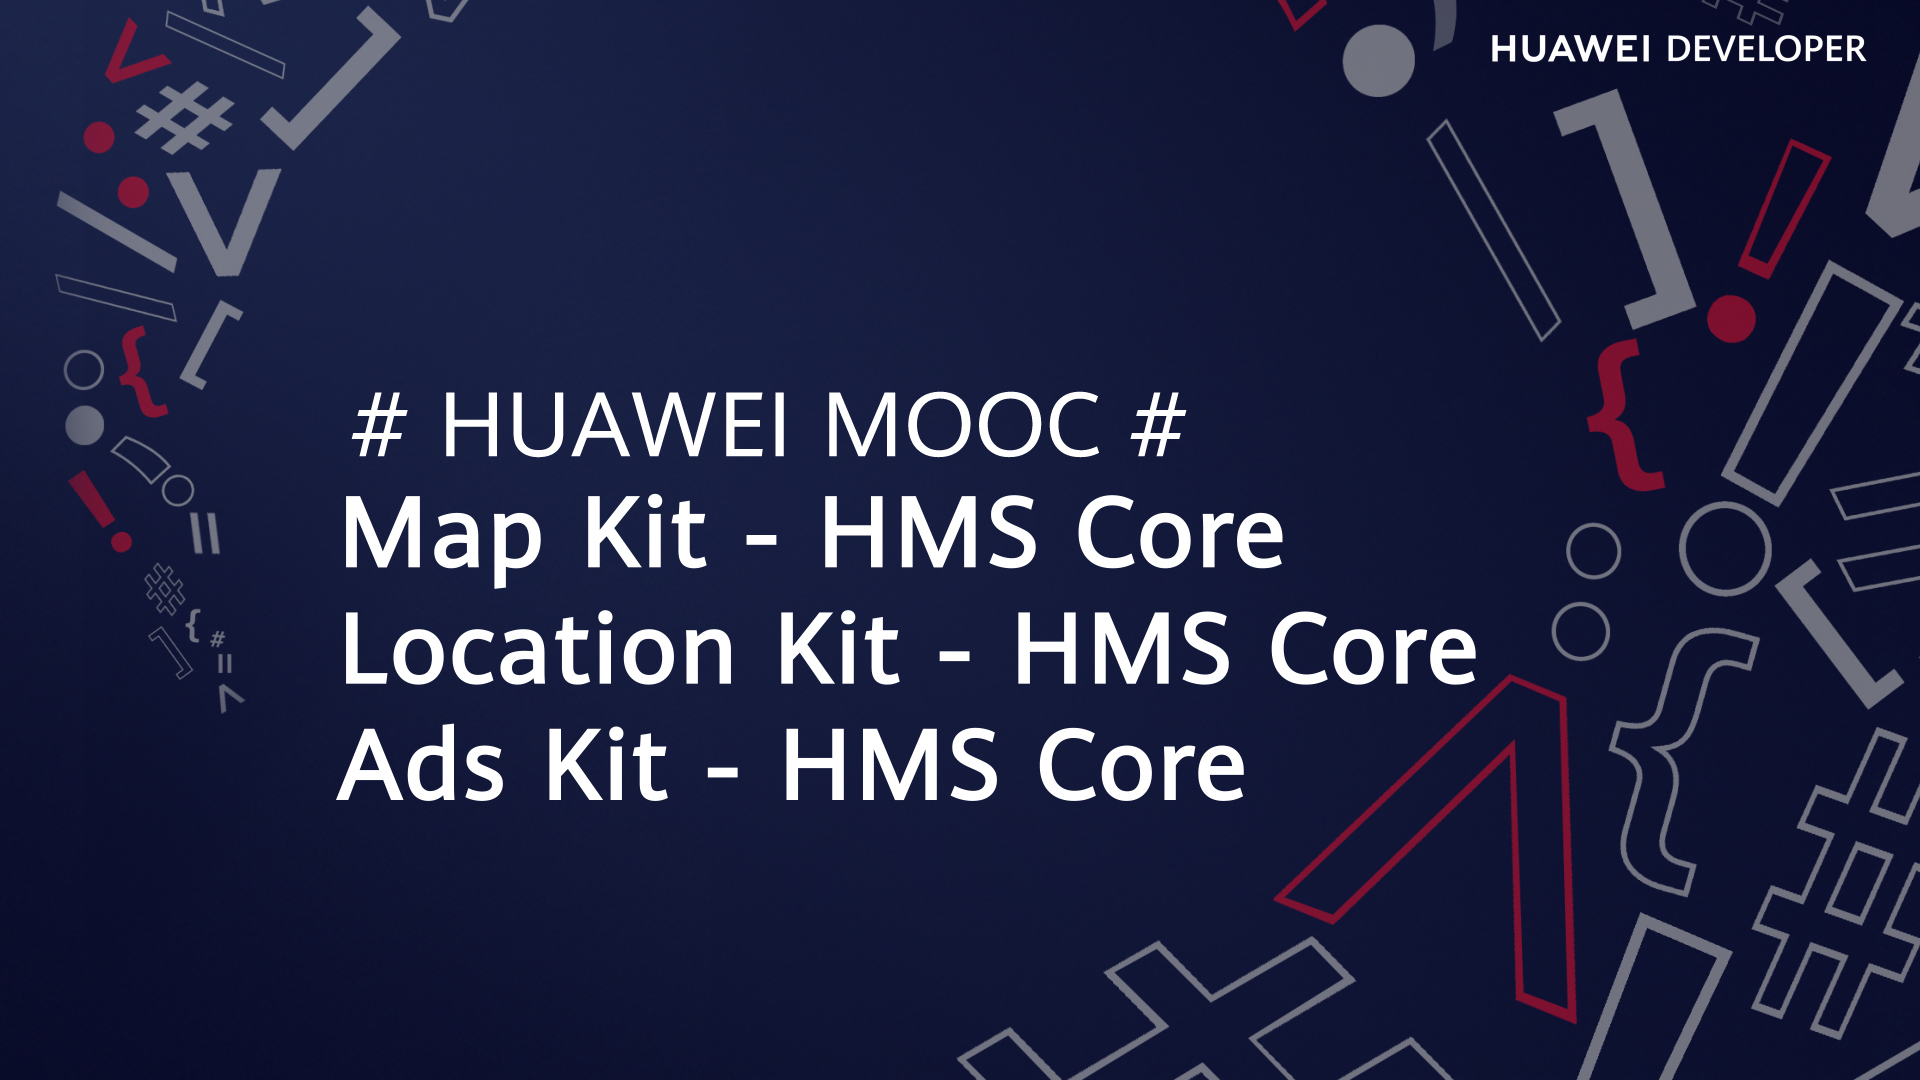 HMS Core Excellent Courses(Ads Kit,Map Kit,Location Kit)